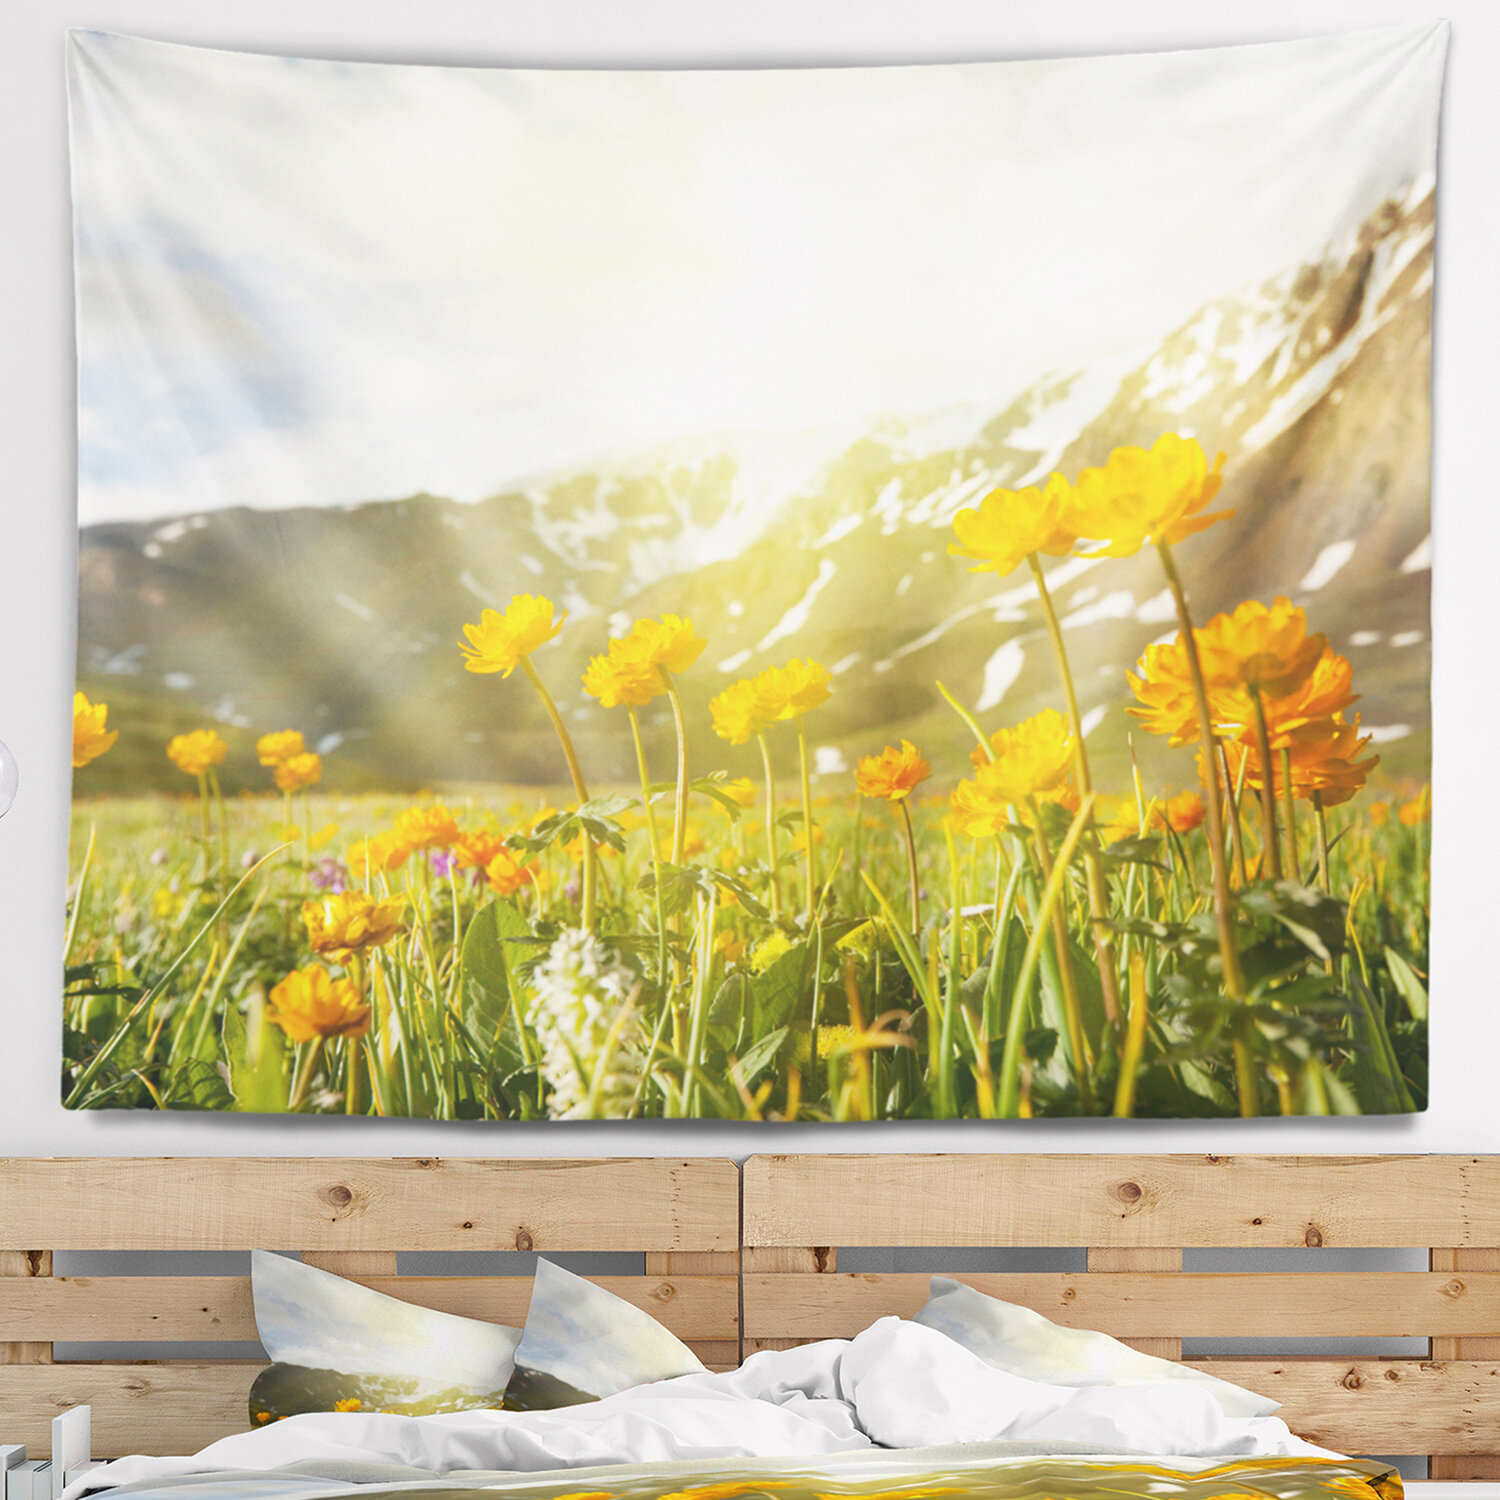 East Urban Home Floral Mountain Pasture With Yellow Flowers Tapestry